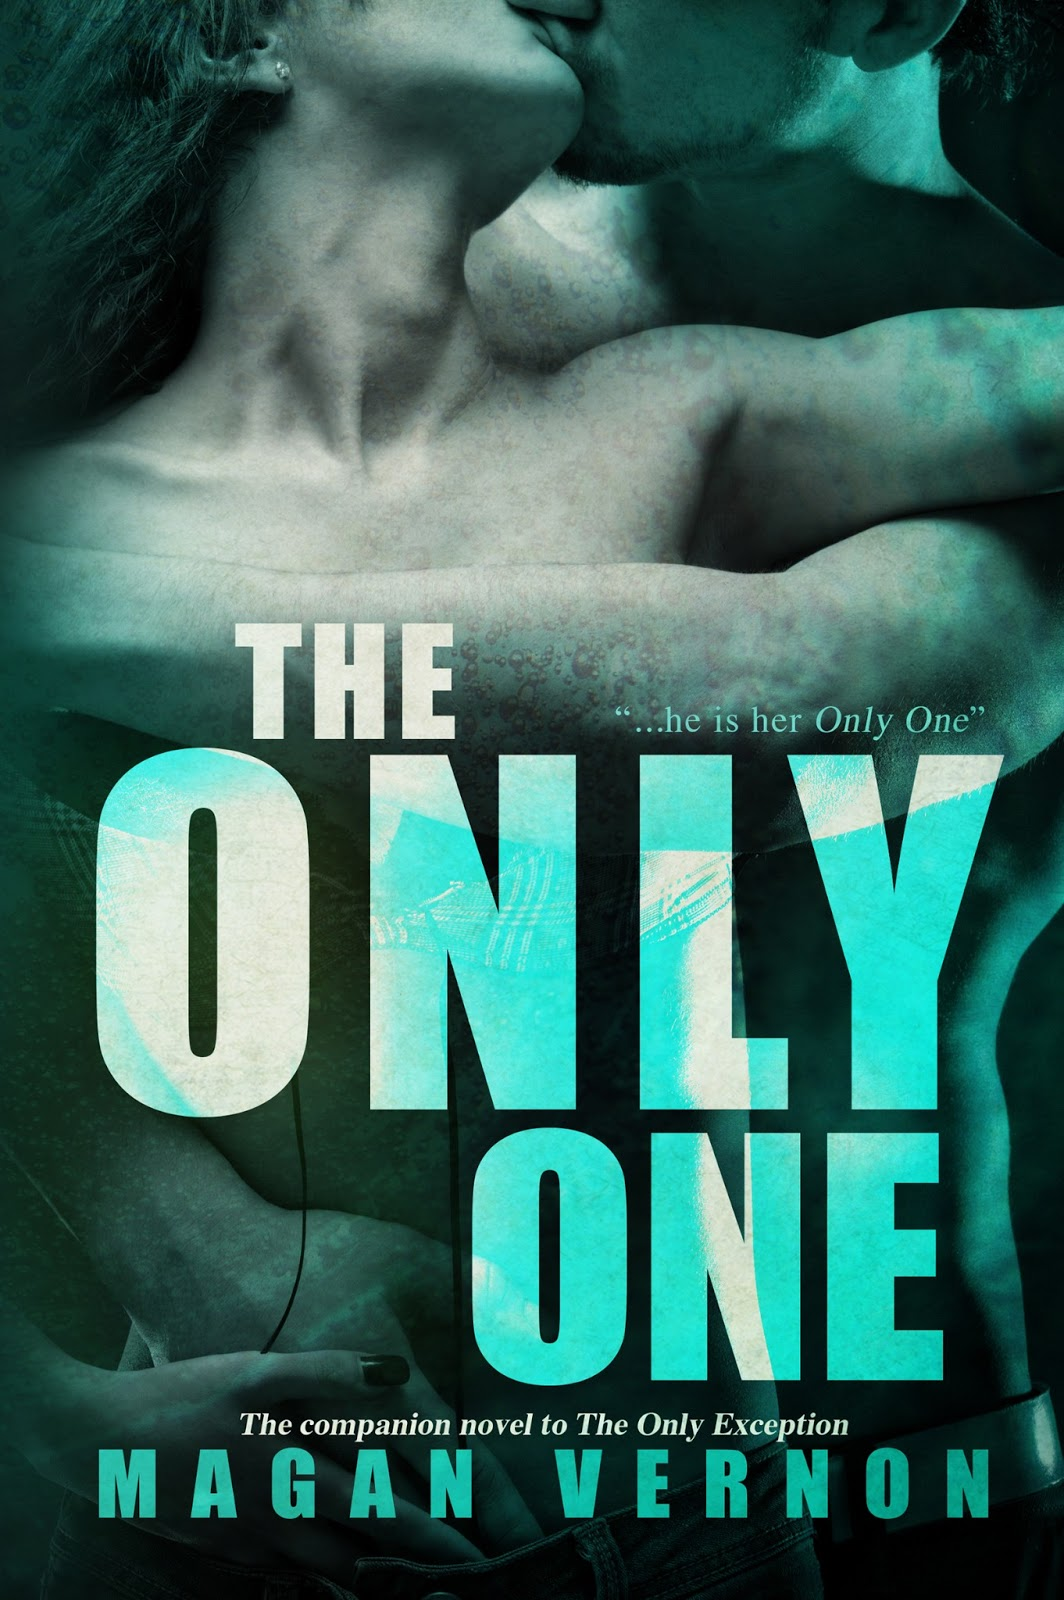 Whirlwindbooks july 2013 the only exception cover reveal fandeluxe Images